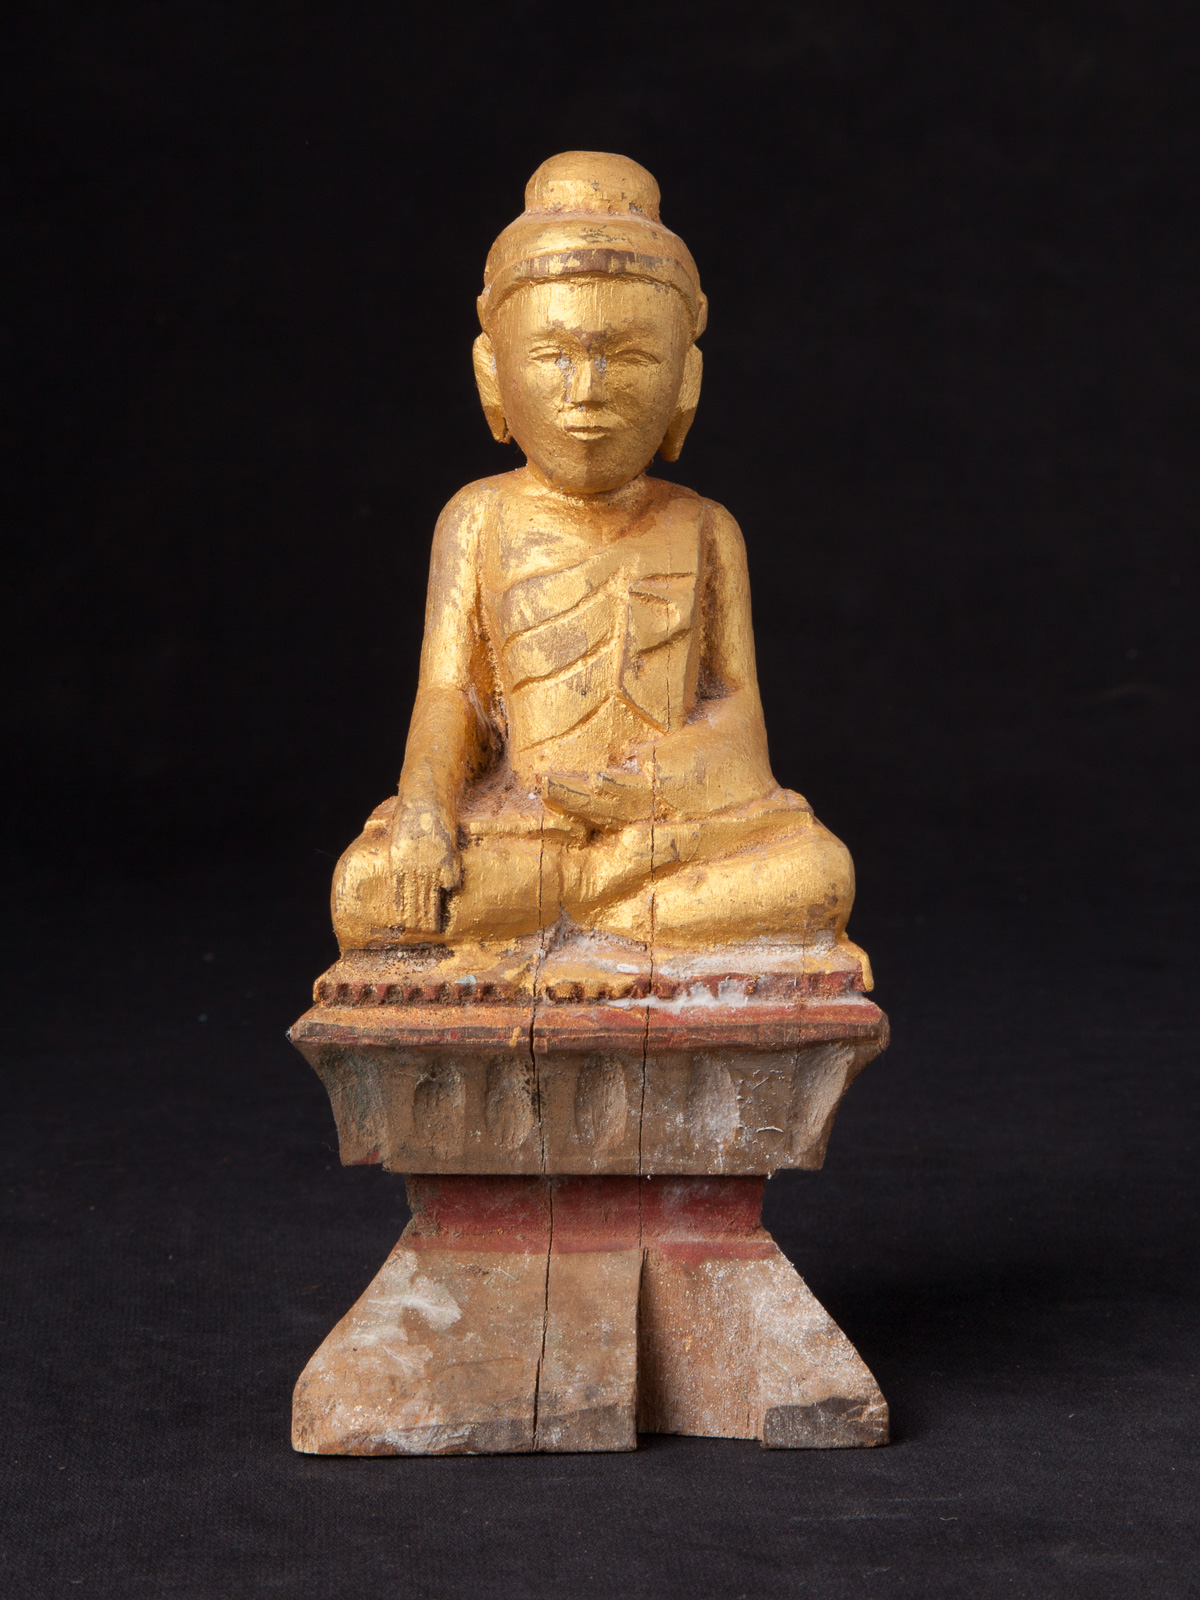 Antique Burmese Buddha statue from Burma